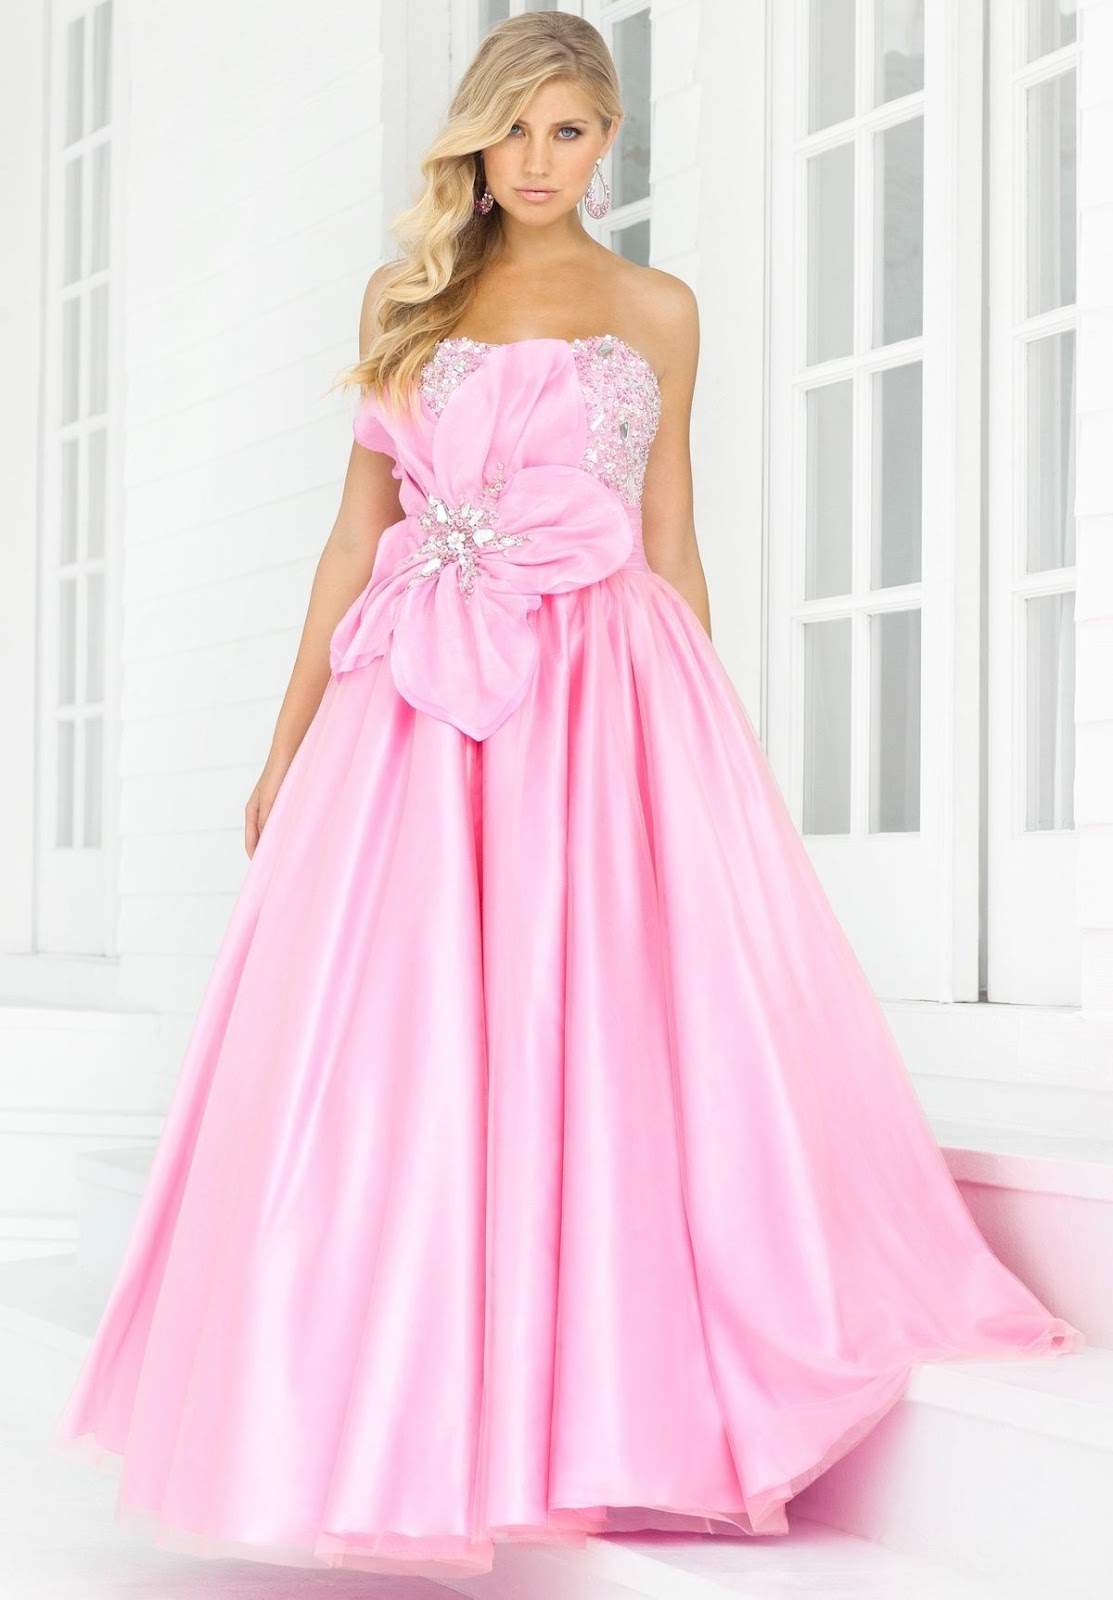 WhiteAzalea Ball Gowns: Delicate Ball Gowns Make You a Fair Lady